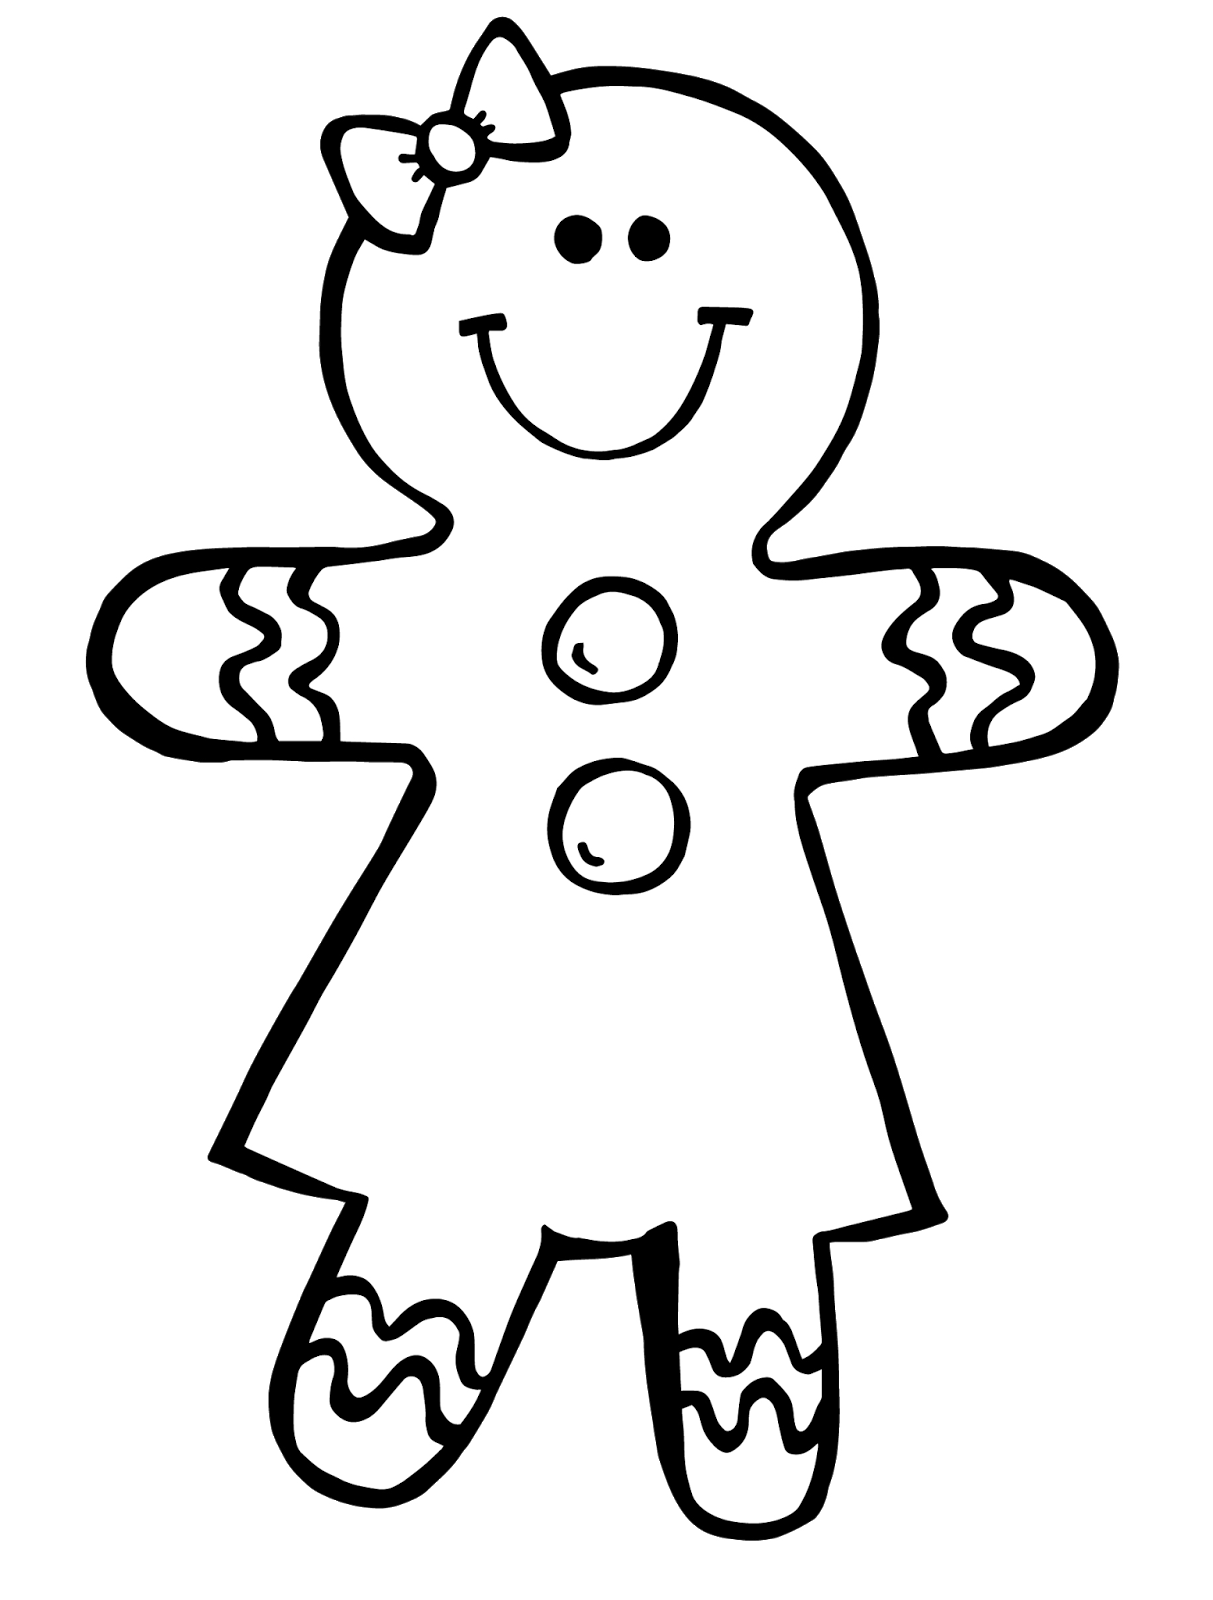 Gingerbread man black and white clipart 2.